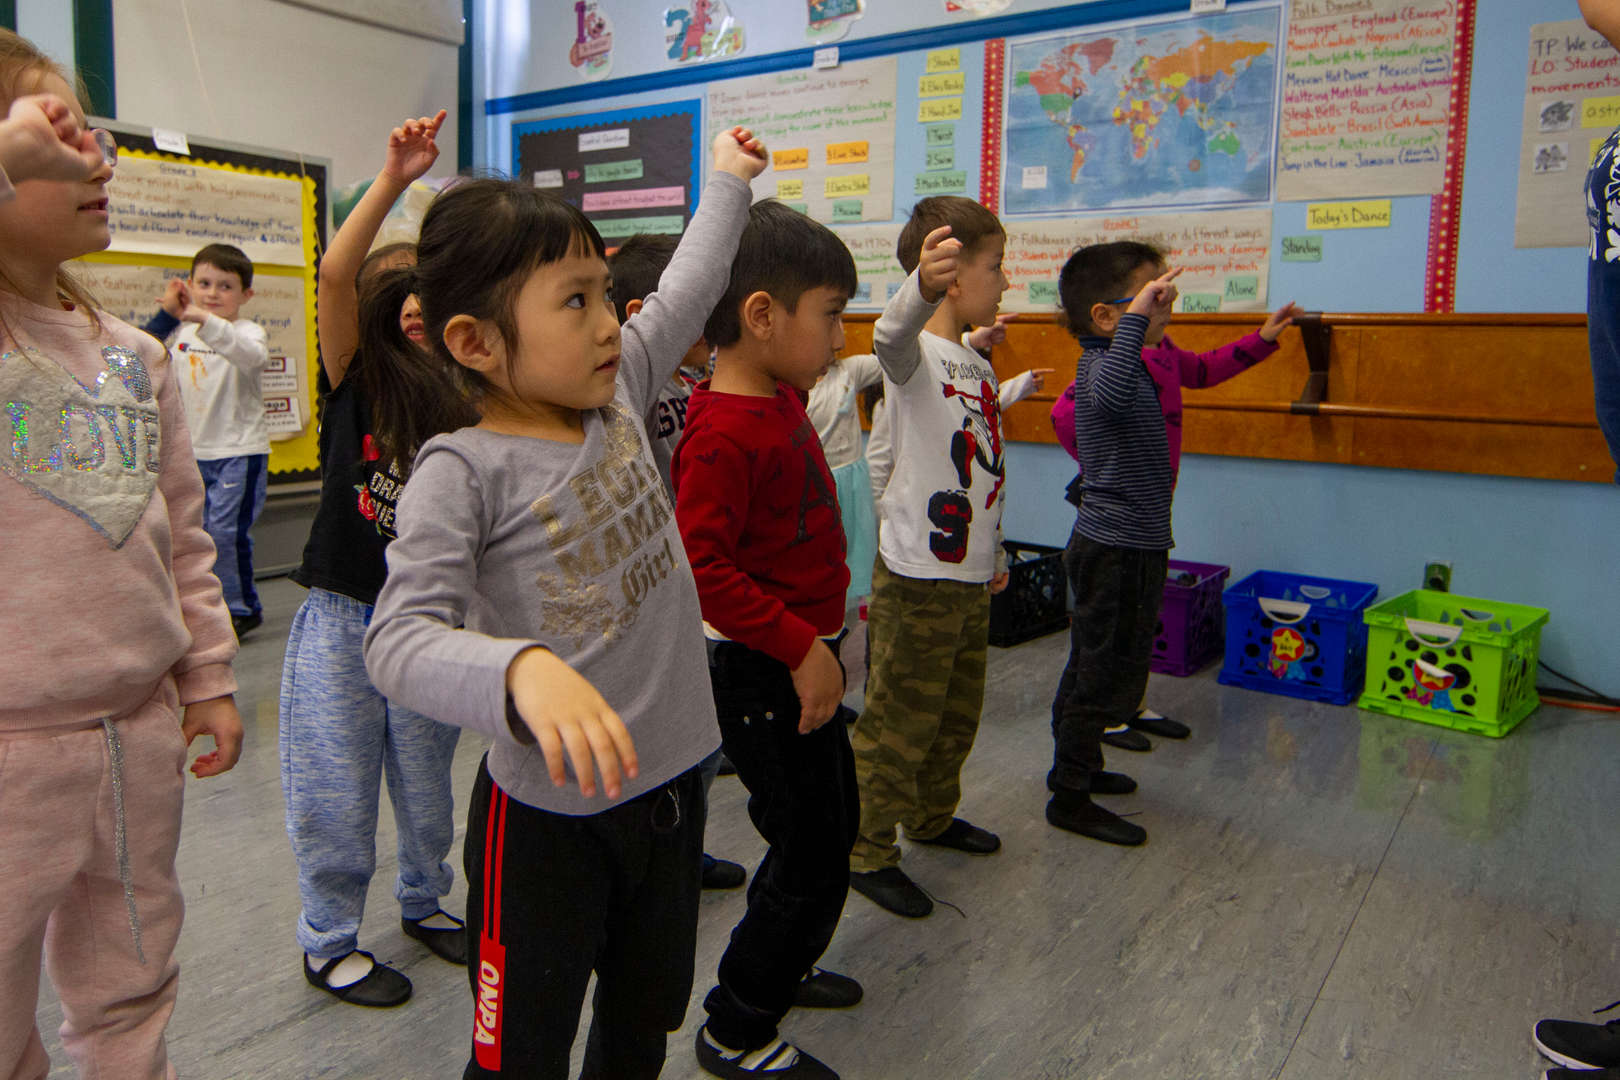 Students moving together in dance class